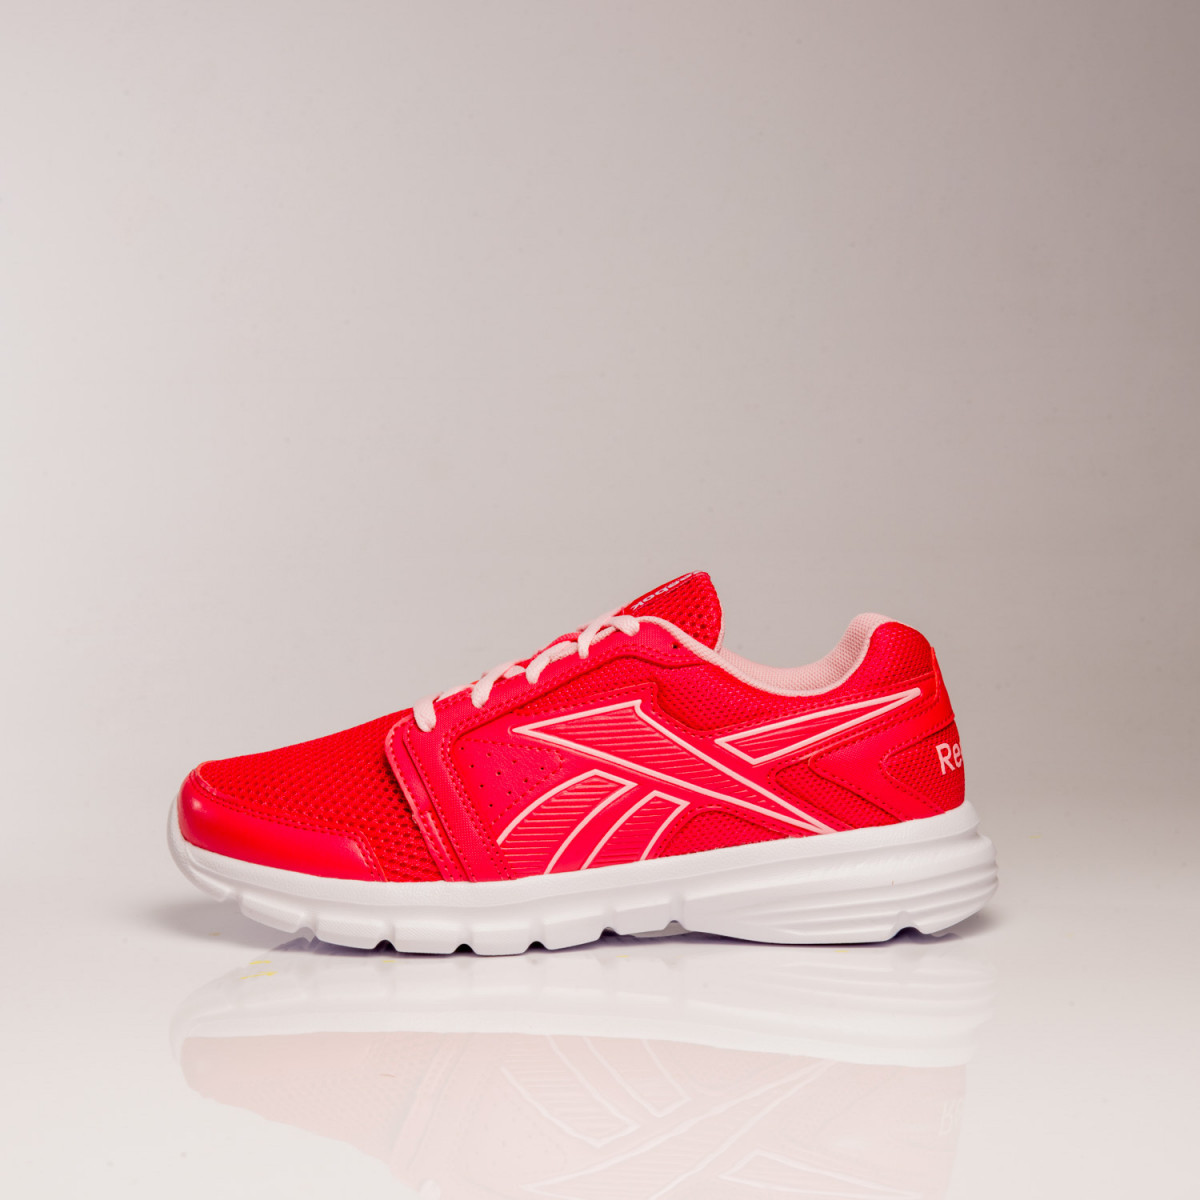 ZAPATILLAS REEBOK SPEEDFUSION 3.0 (W)